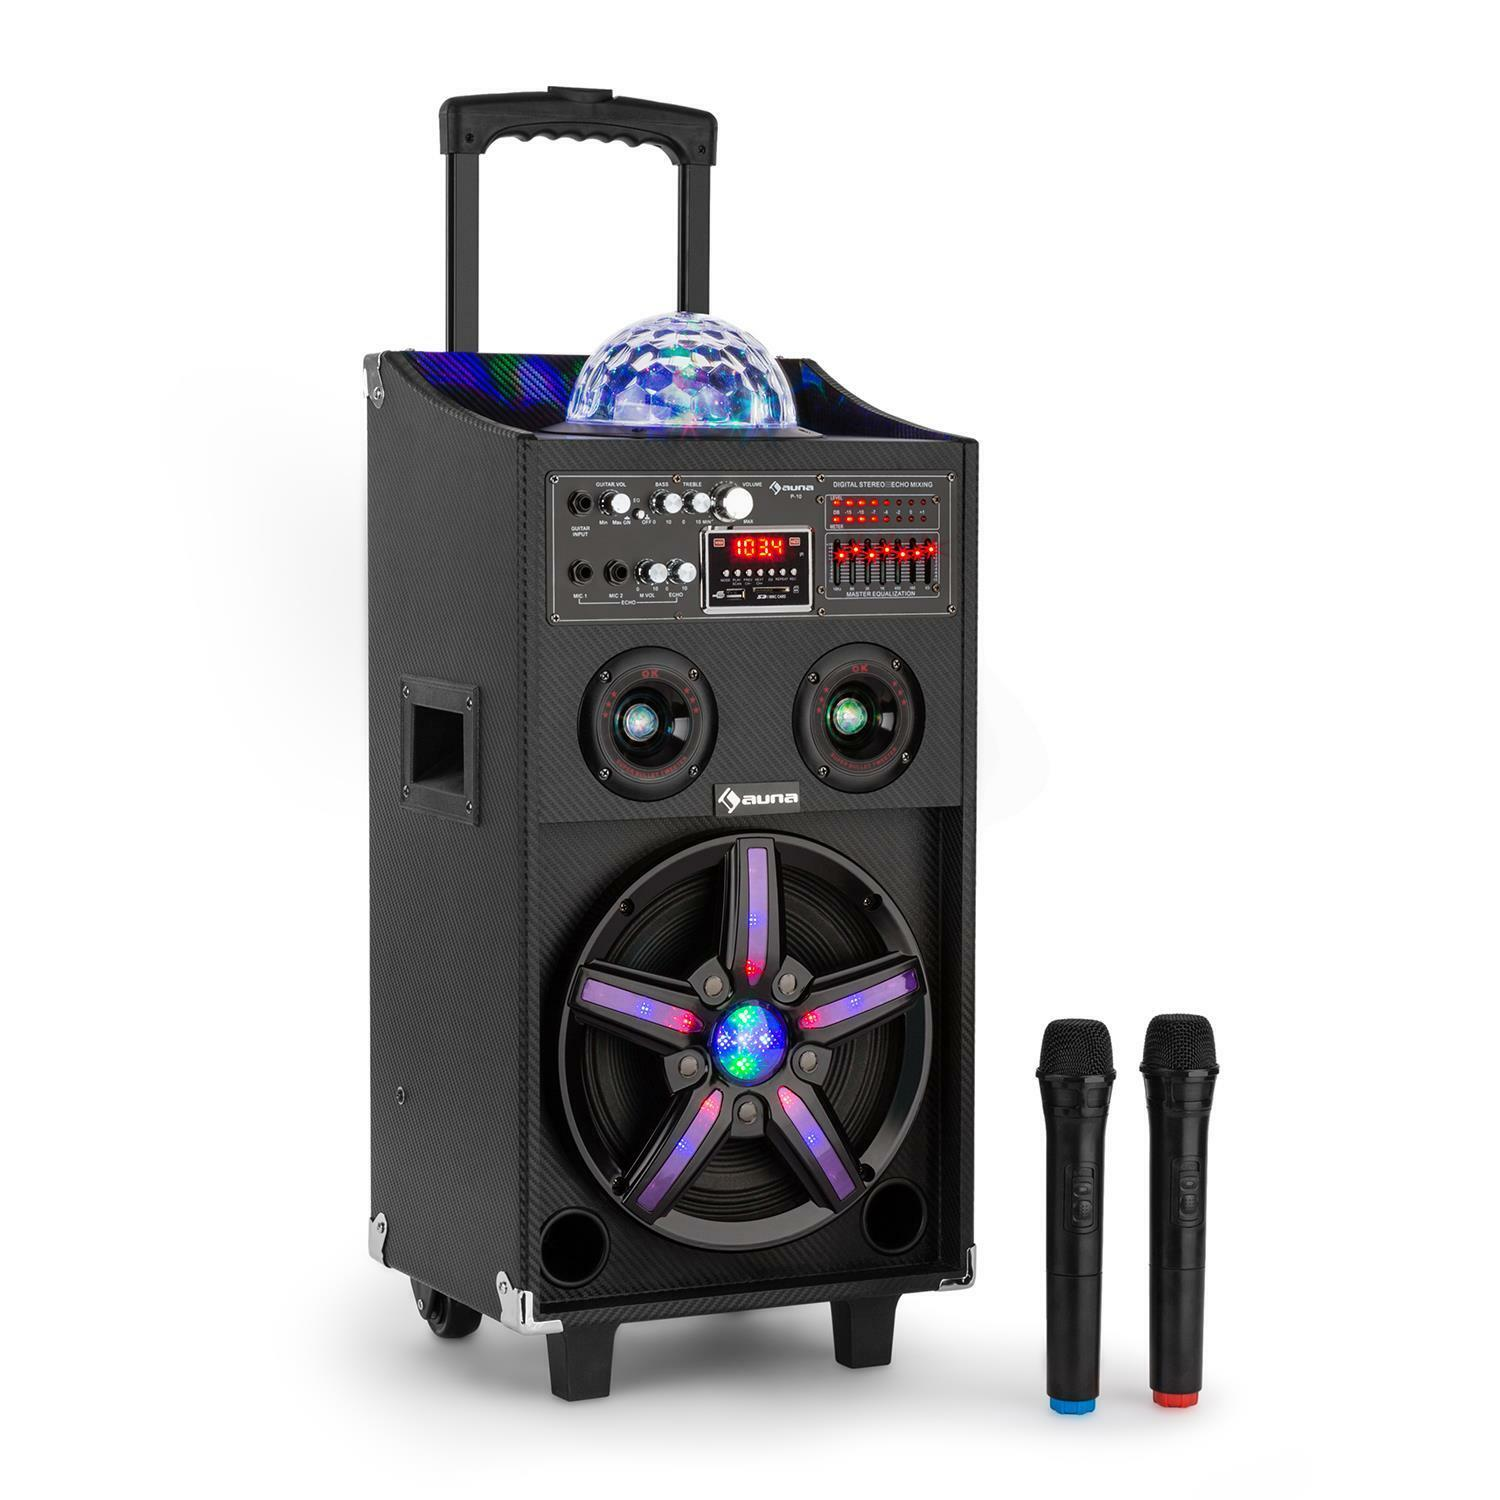 2 wege soundsystem lautsprecher tragegriff rollen karaoke aux eingang 100 watt eur 799 95. Black Bedroom Furniture Sets. Home Design Ideas